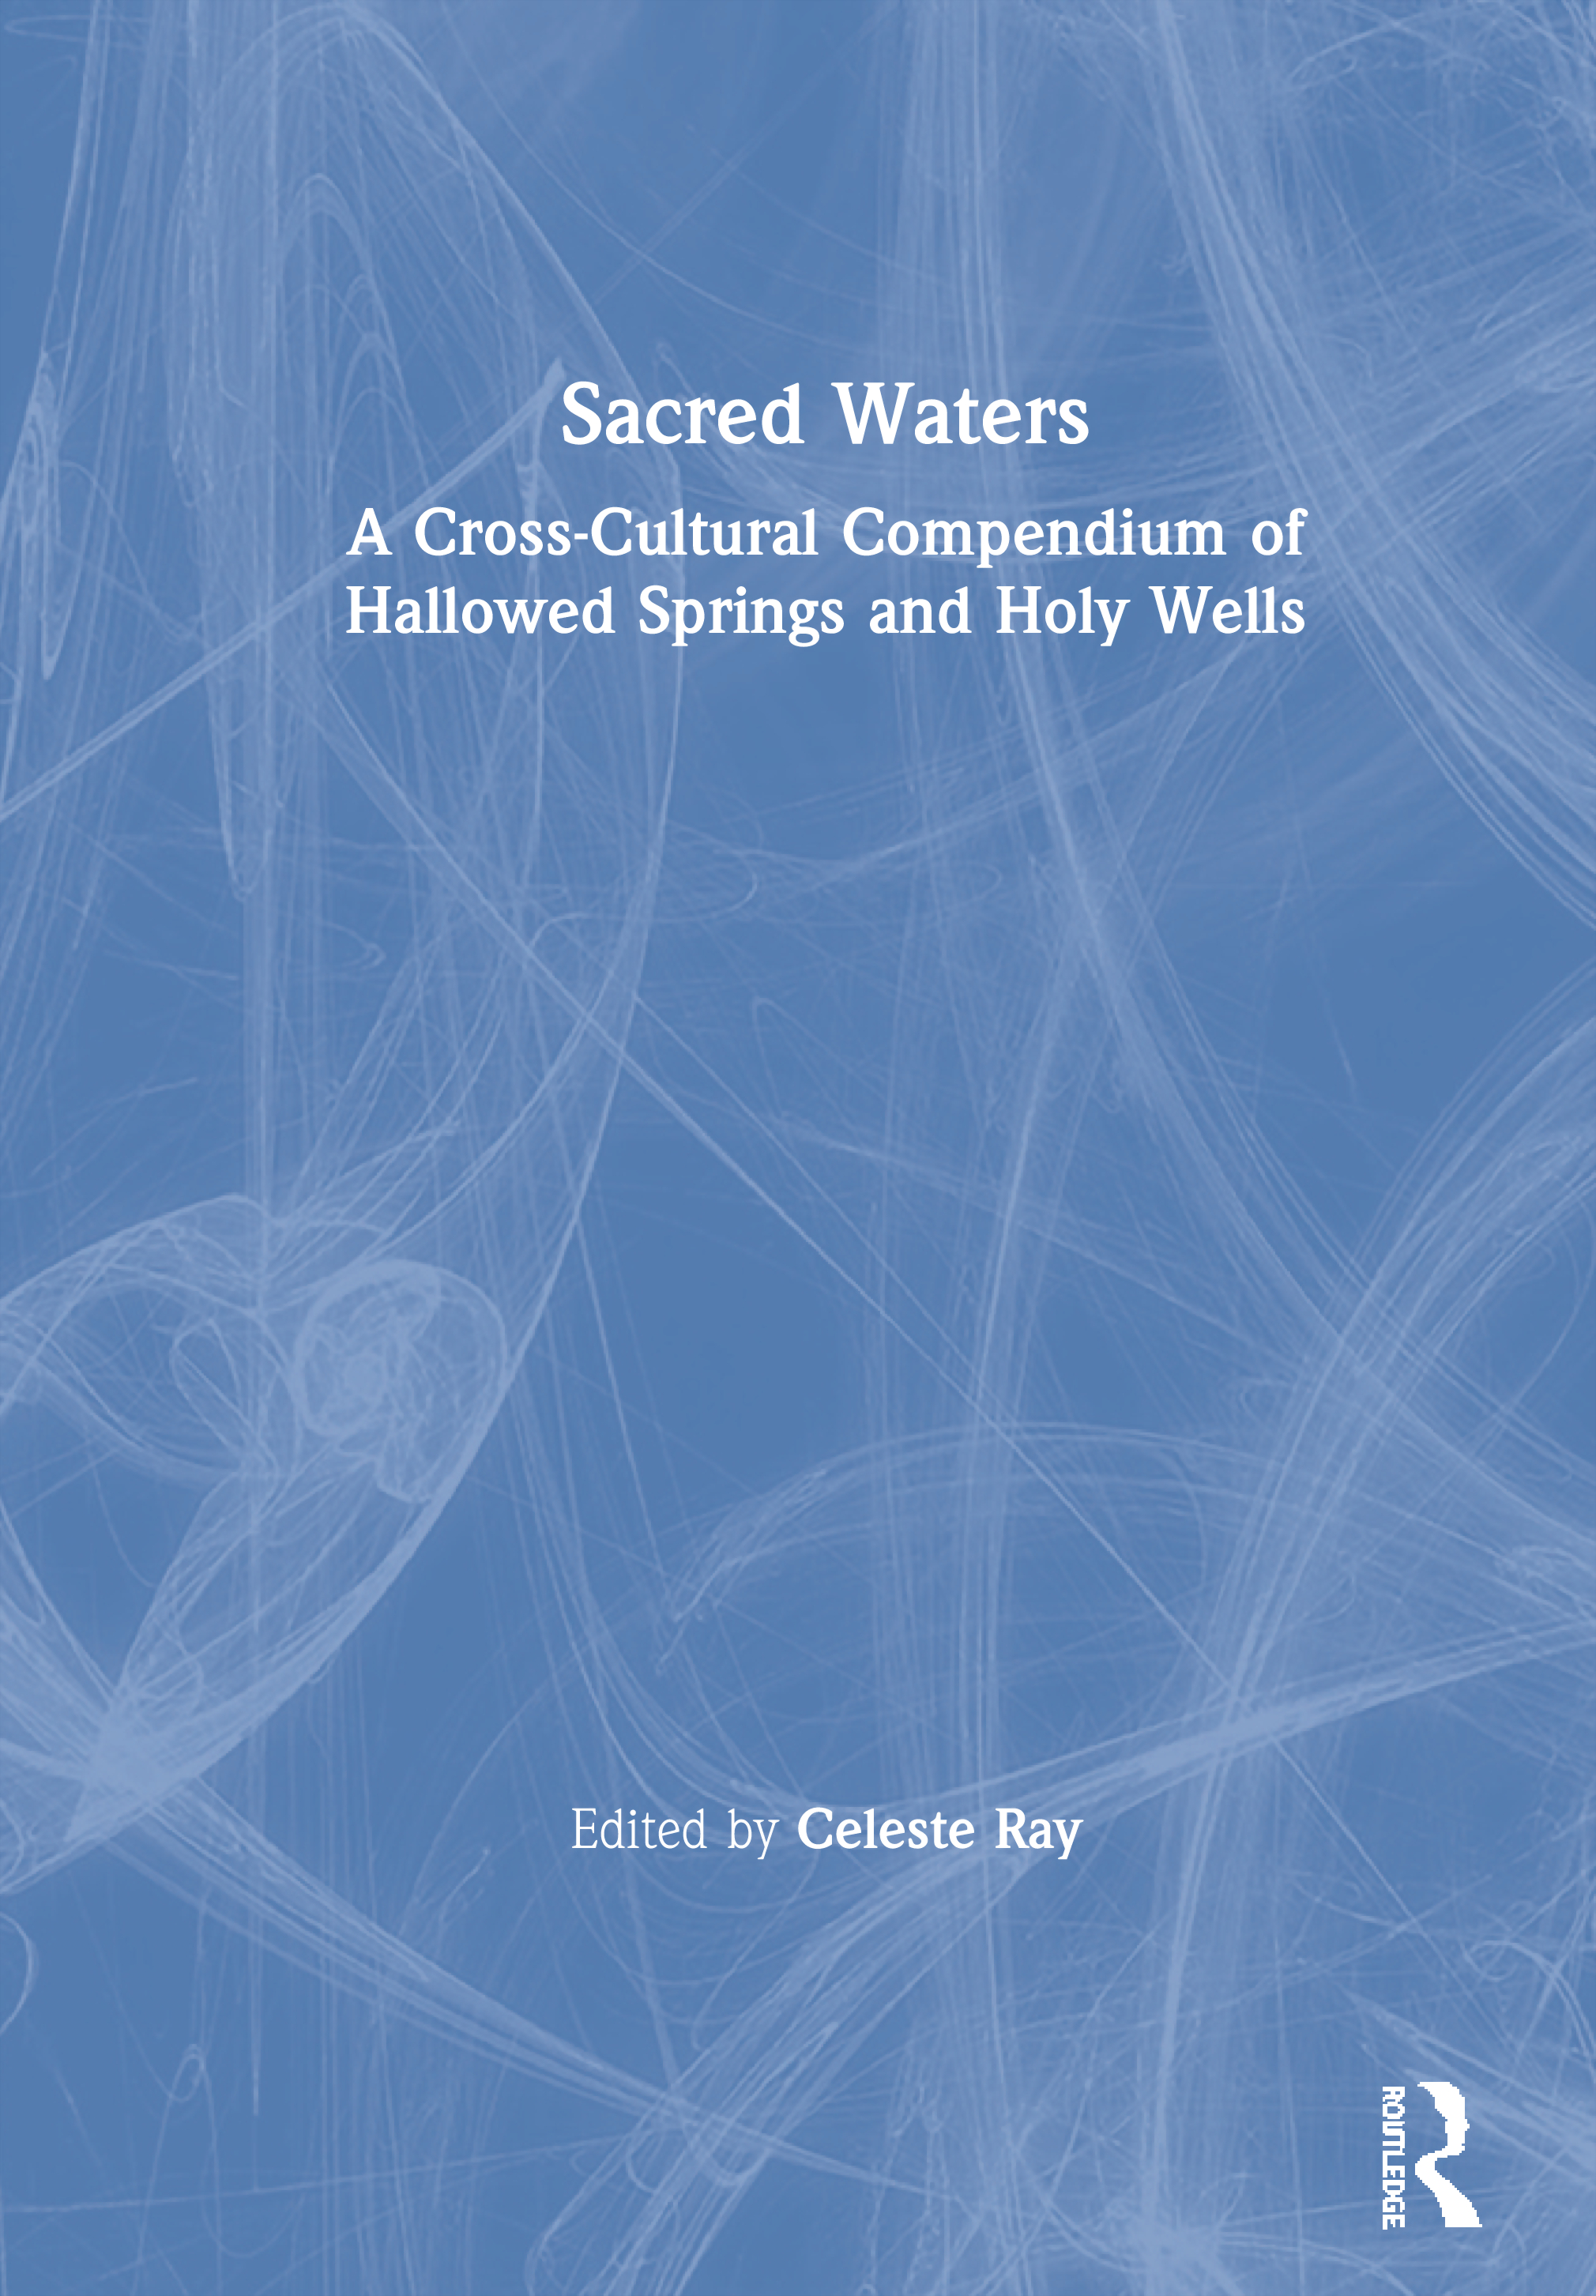 Sacred Waters: A Cross-Cultural Compendium of Hallowed Springs and Holy Wells book cover